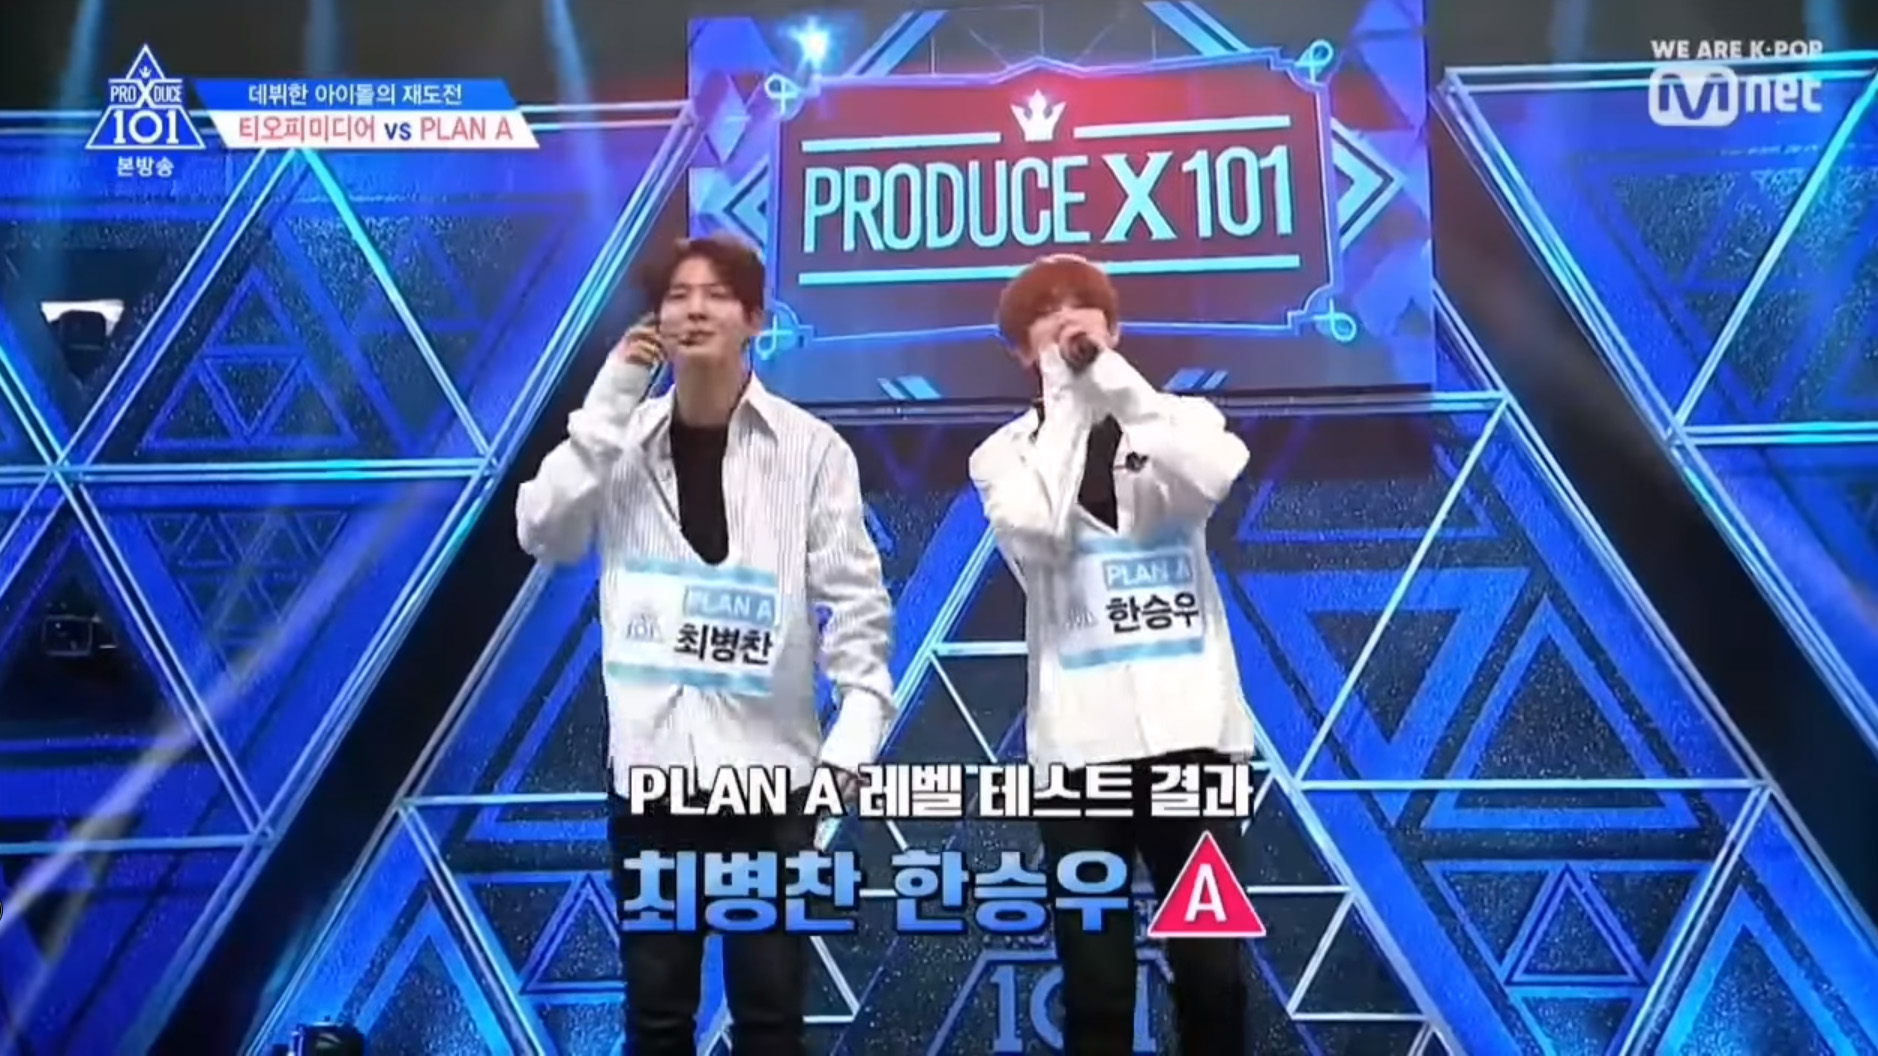 produce x 101, produce x 101 trainees, produce x 101 members, produce x 101 height, produce x 101 company, kpop, trainee, produce x 101 plan a, plan a